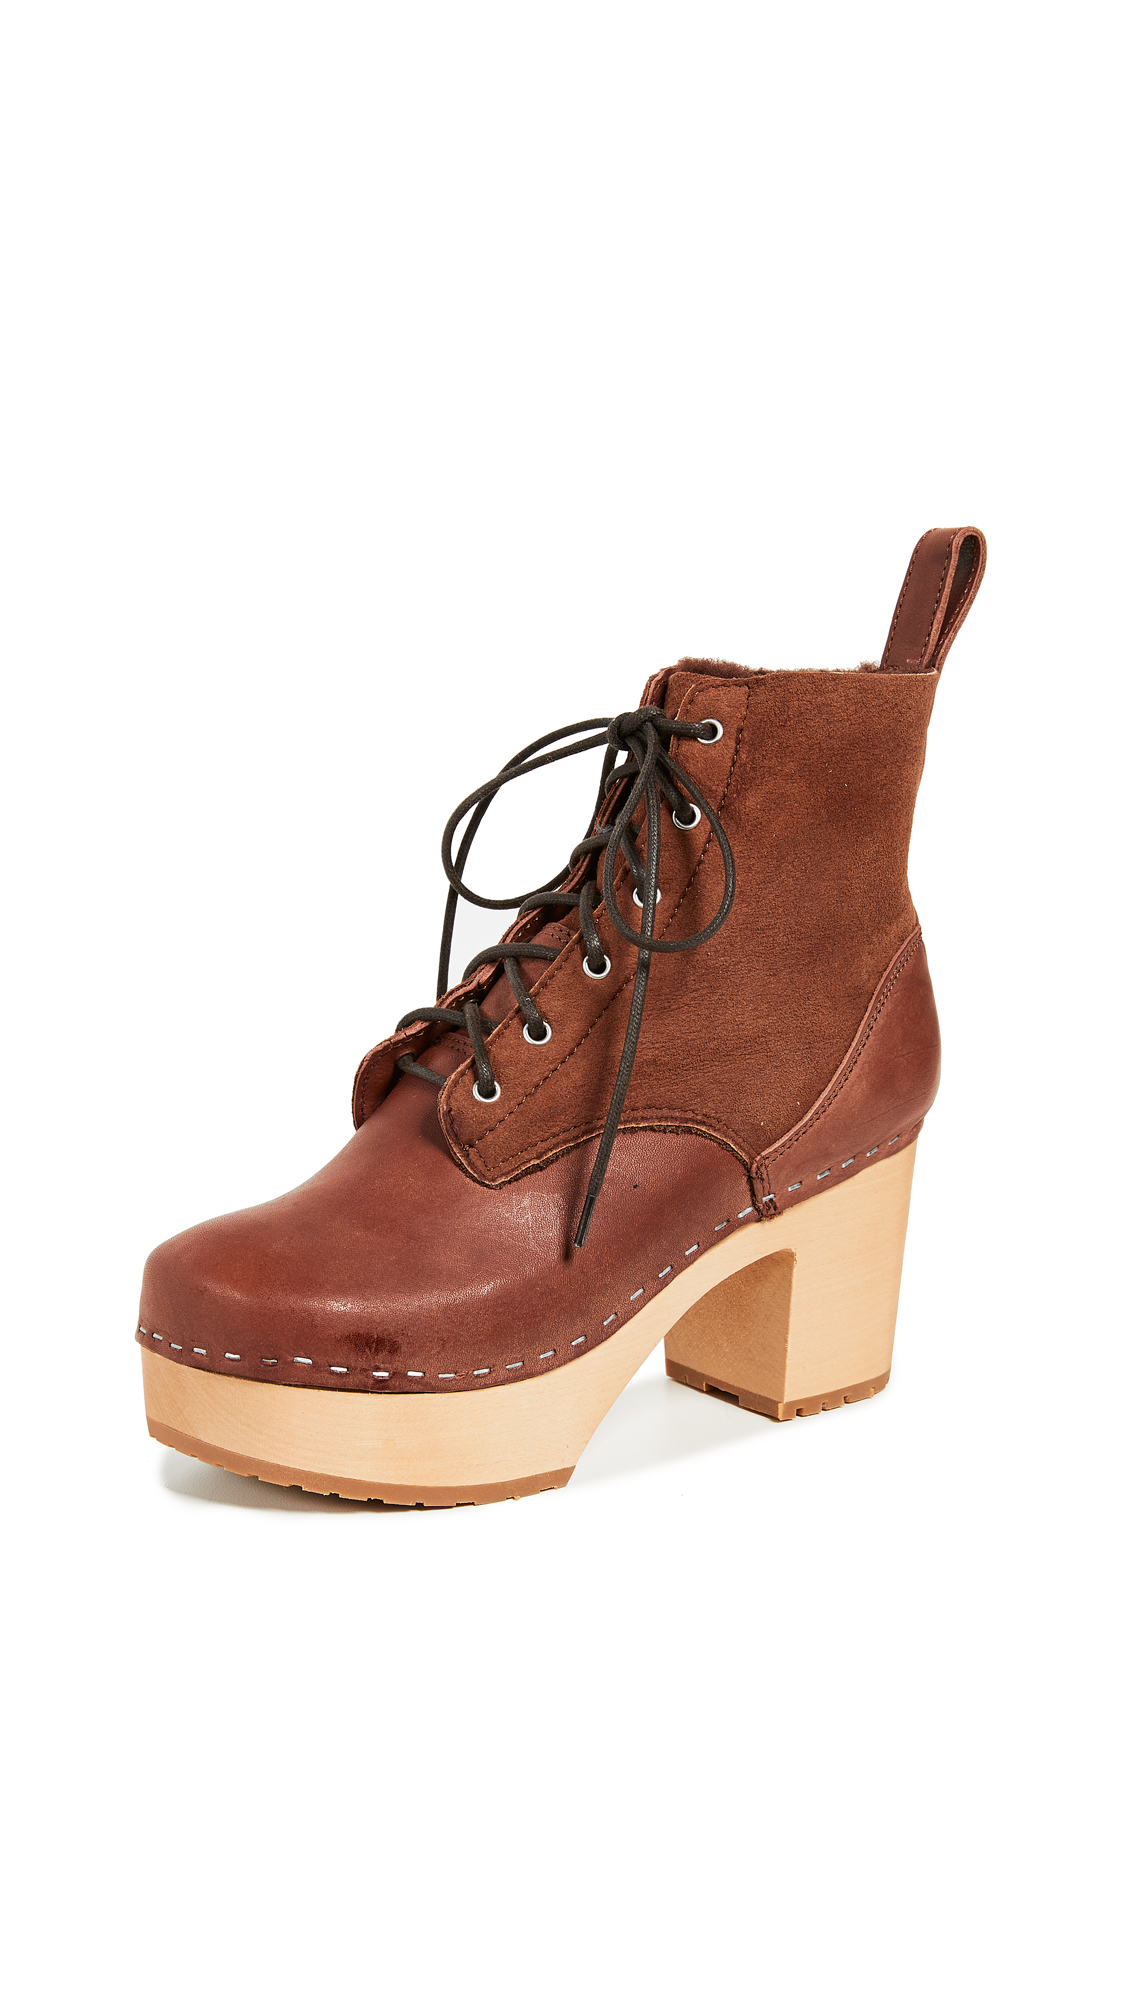 Swedish Hasbeens Hippie Lace Up Boots - Cognac